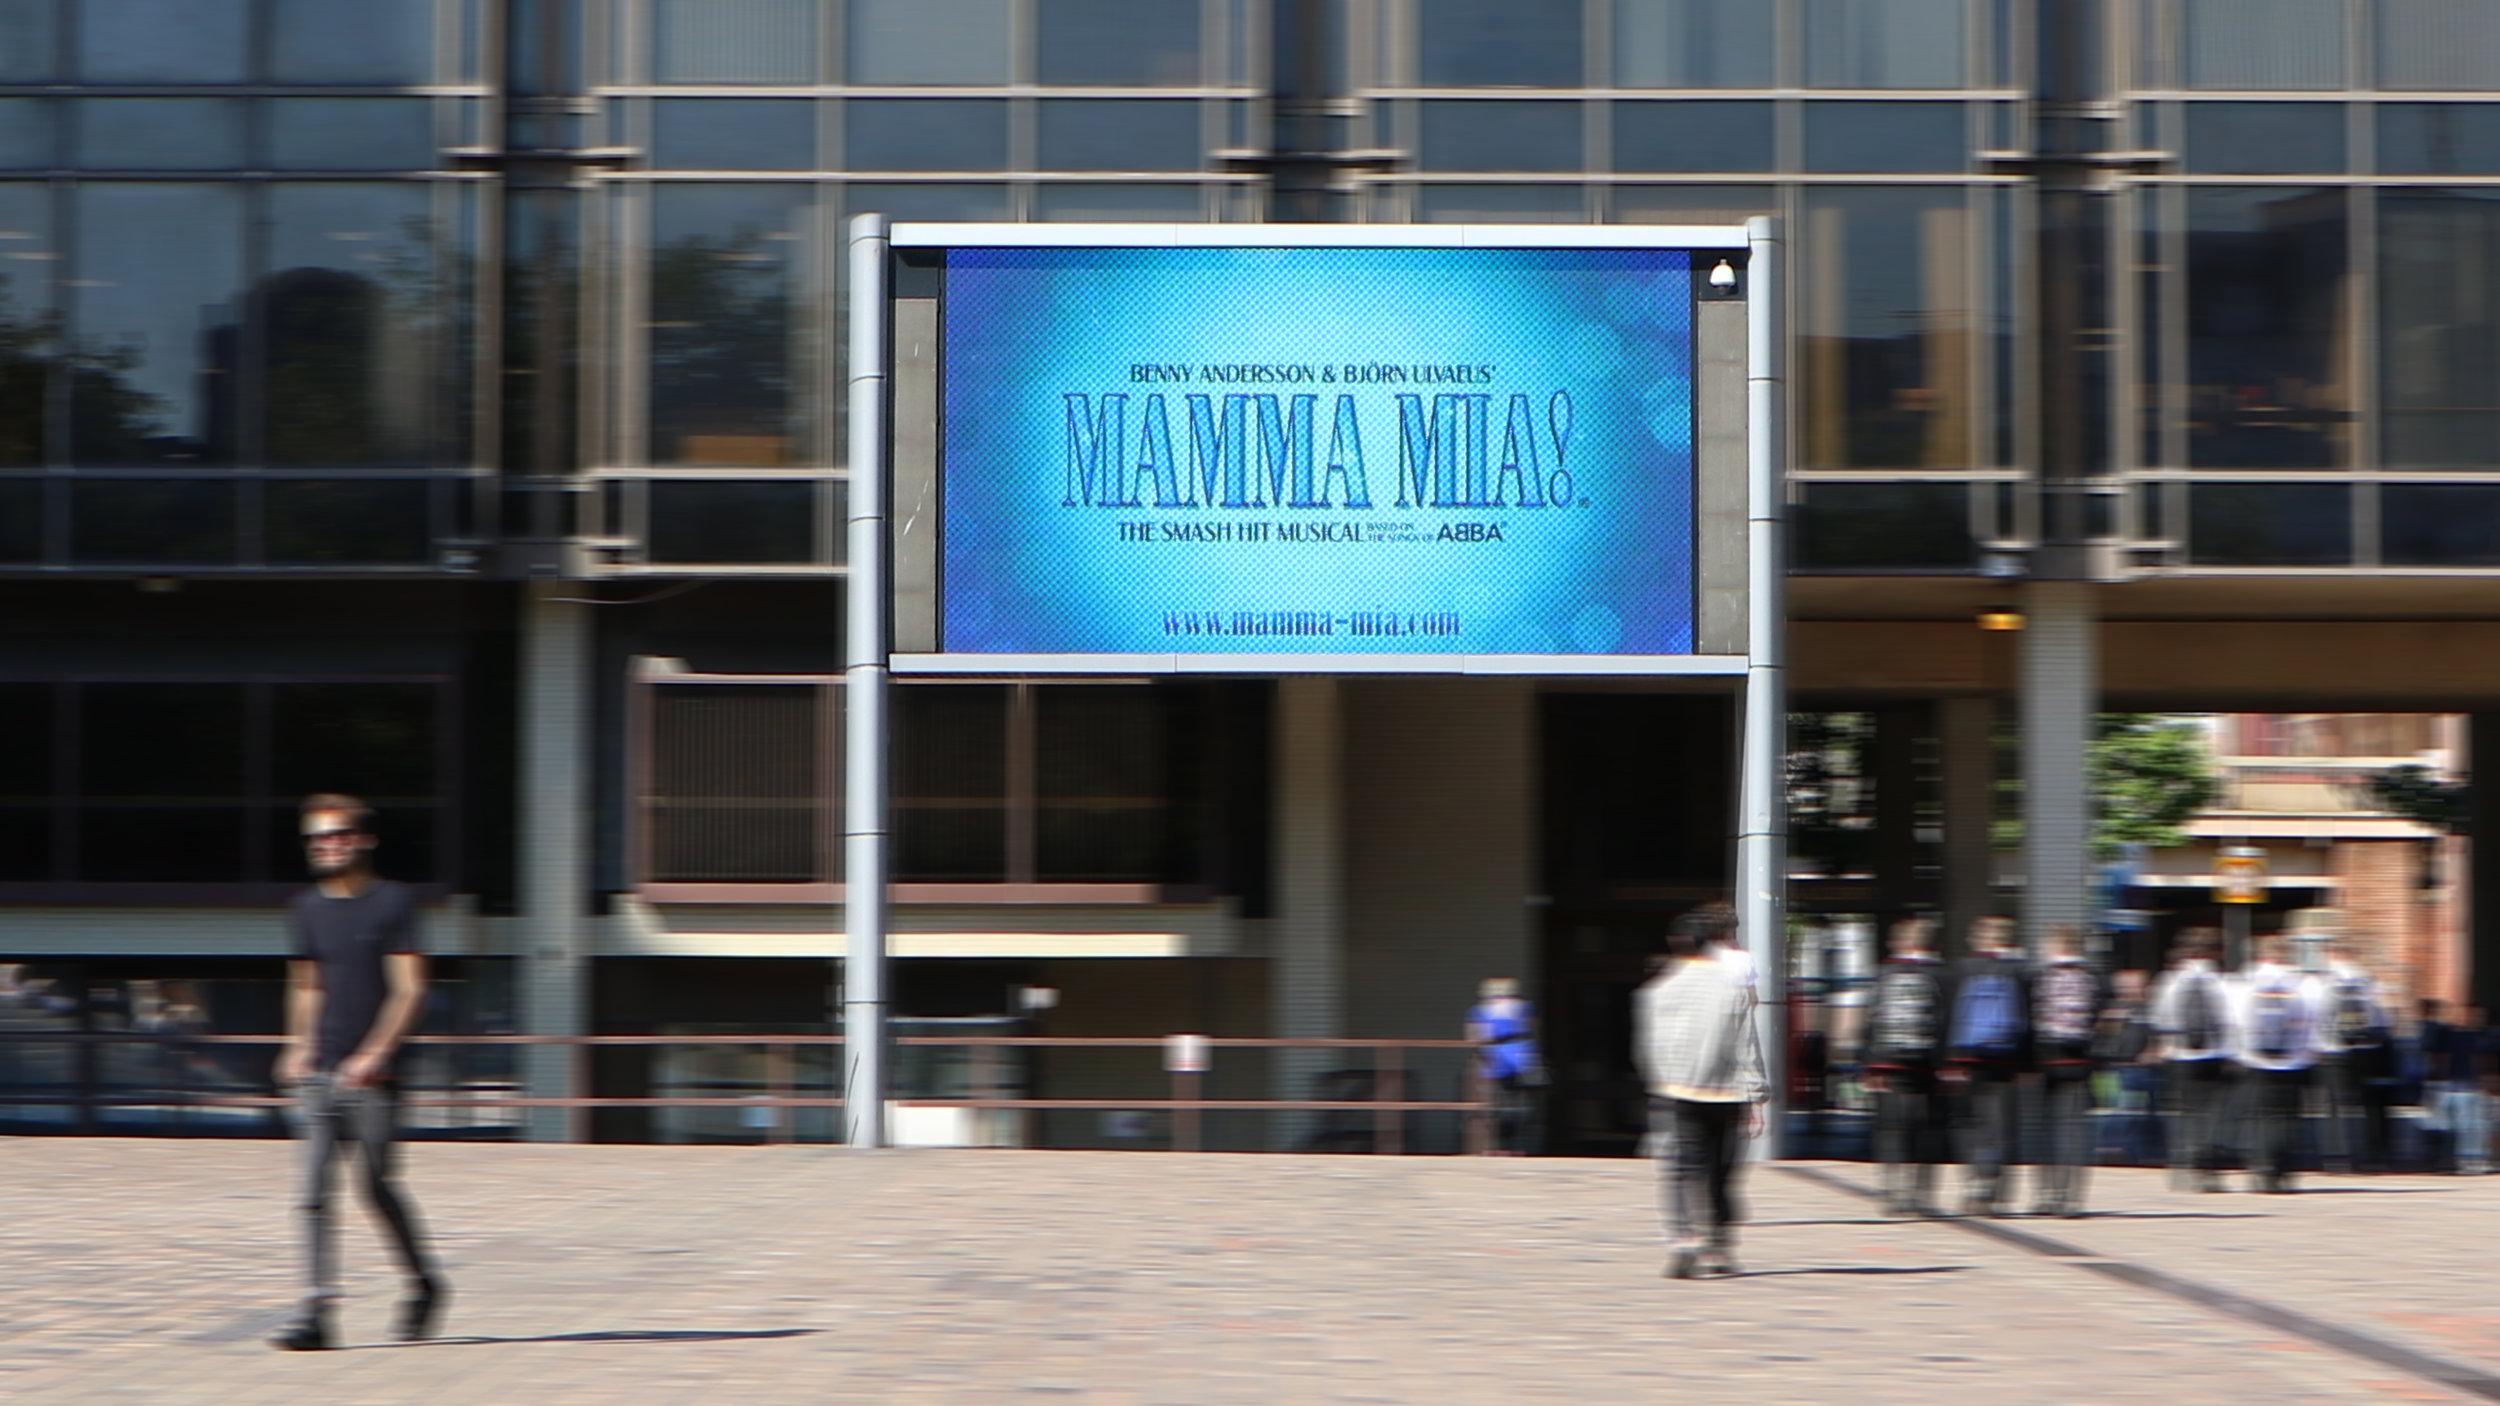 Big Screen Mamma Mia.jpg